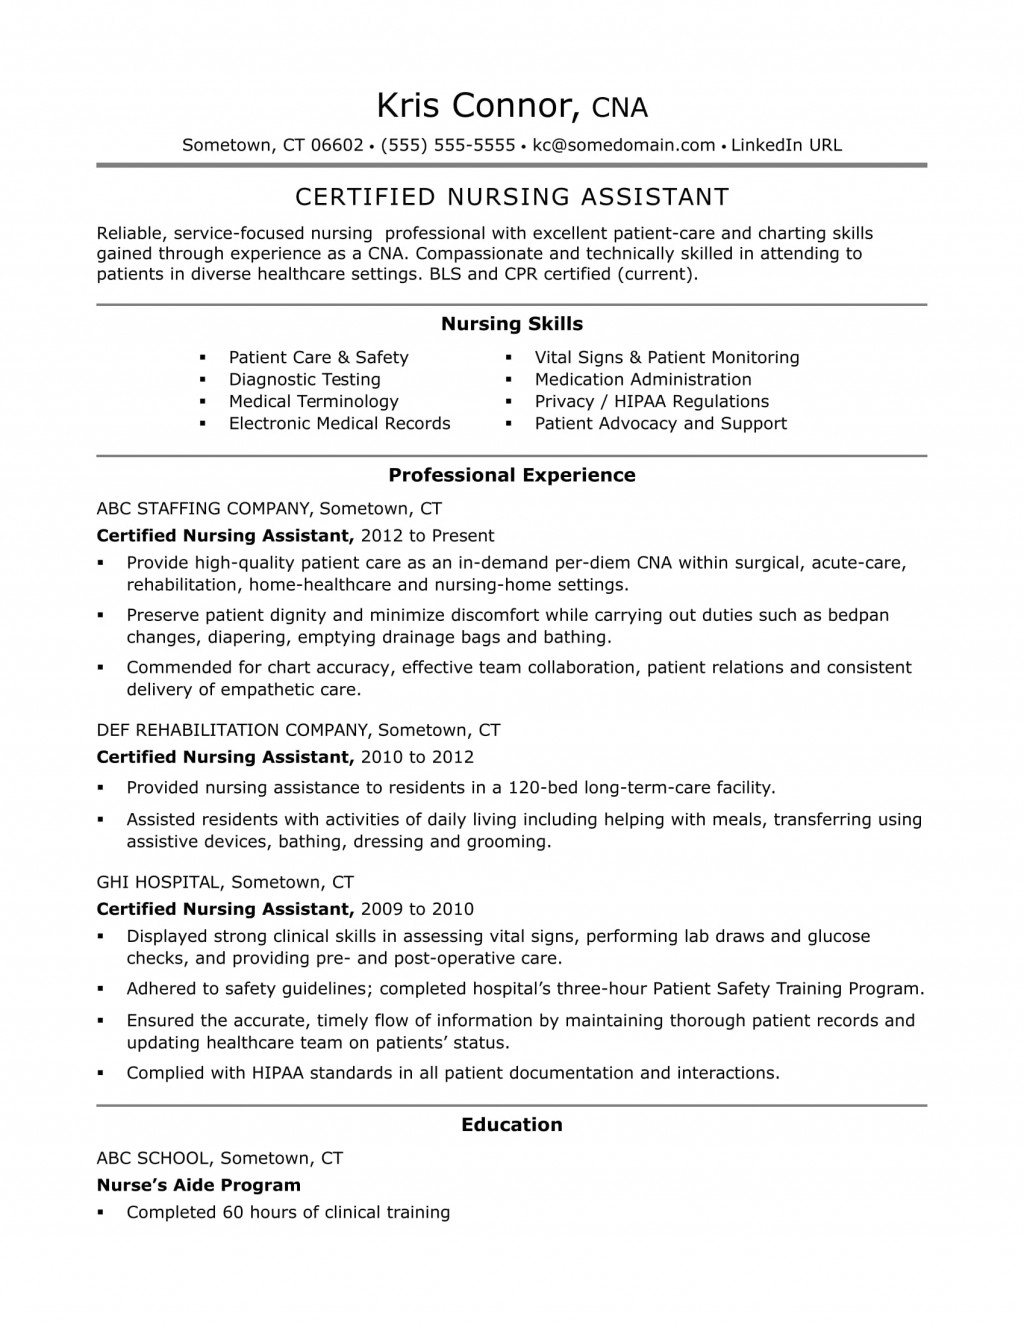 023 Certified Nursing Assistant Essay Example Archaicawful Hipaa Large